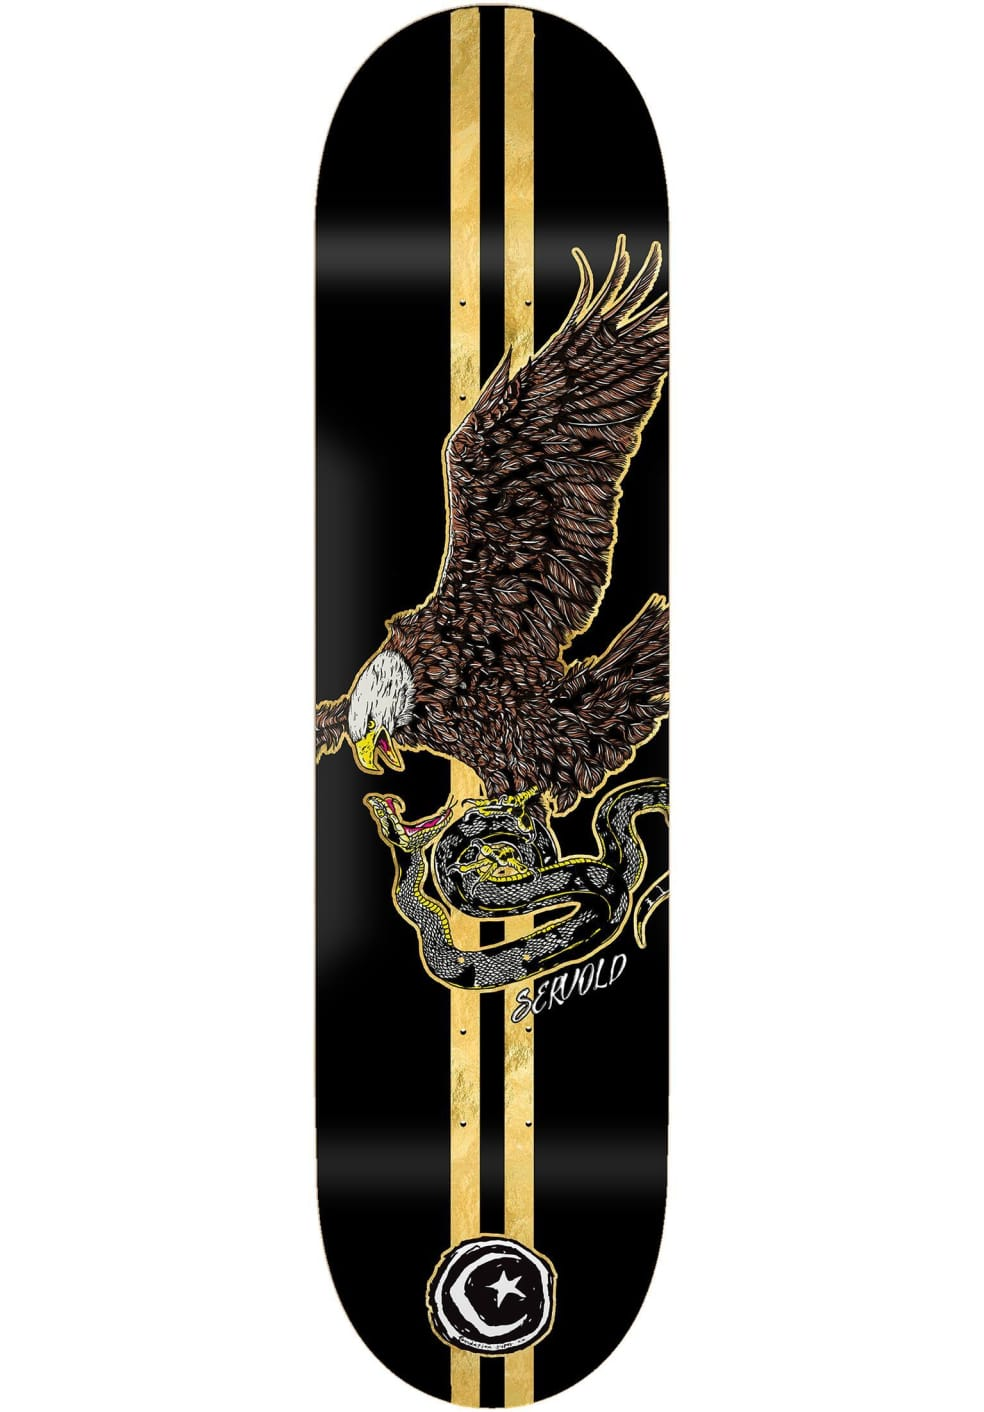 French Eagle (Servold) 8.25   Deck by Foundation 2